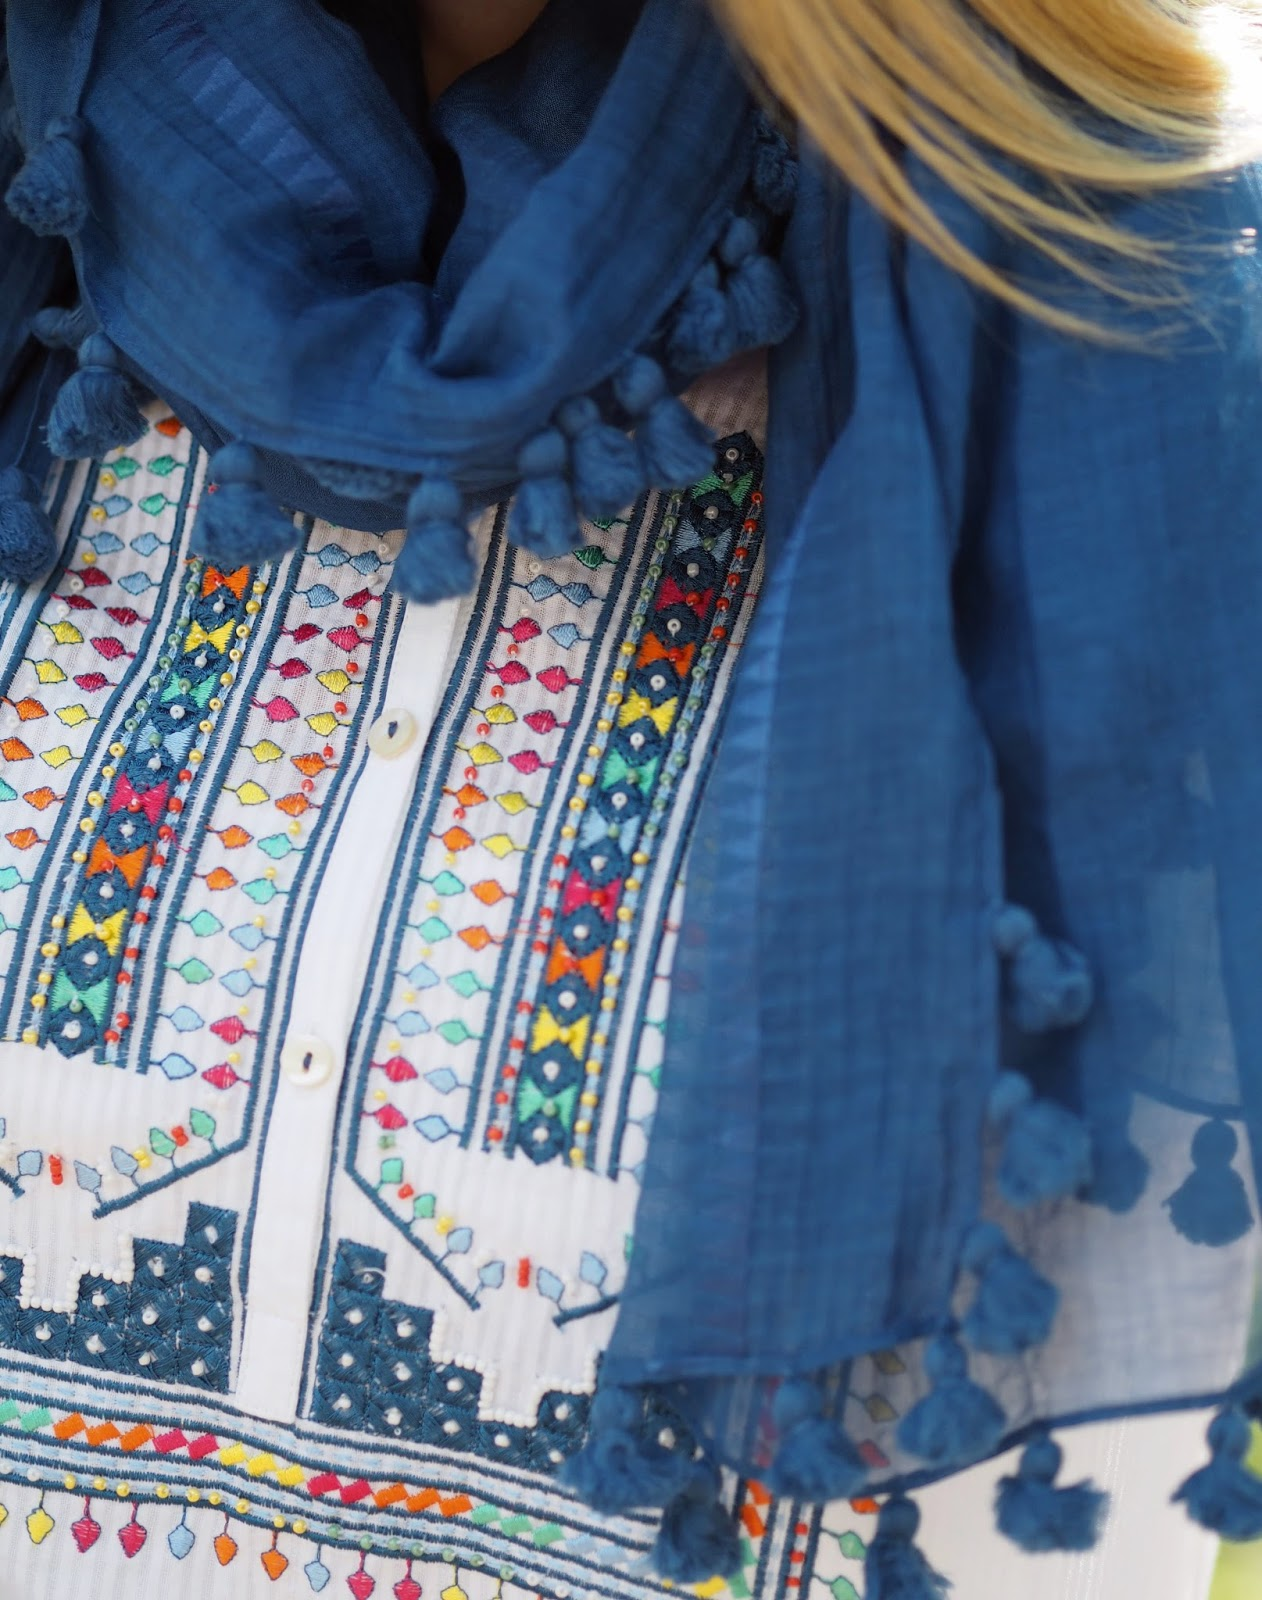 Multi-coloured embroidery on white top with blue pompom scarf